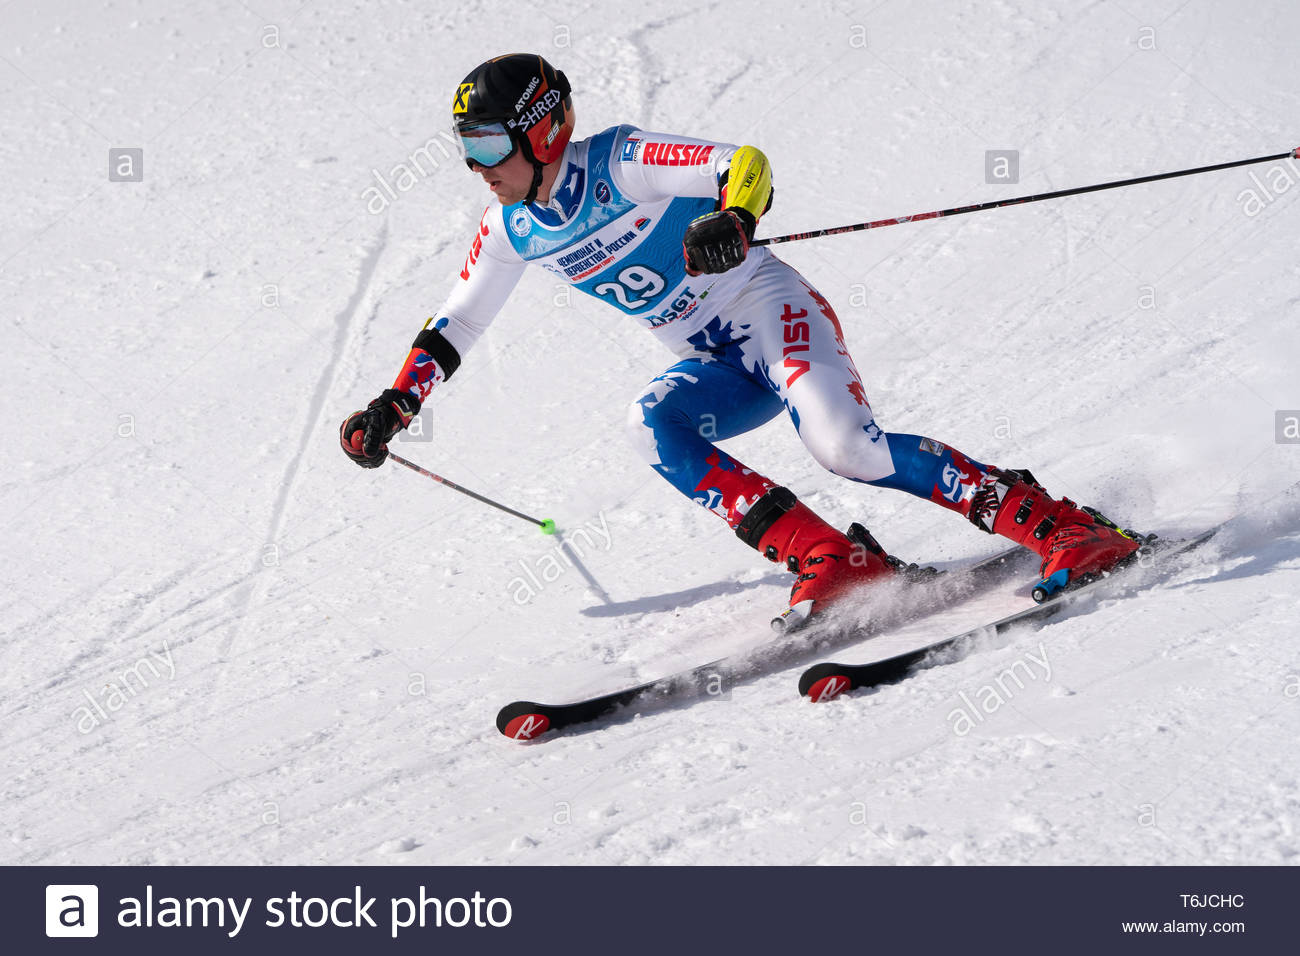 KAMCHATKA PENINSULA, RUSSIA - APR 1, 2019: Mountain skier Kablukov Konstantin (Kamchatka) skiing down slope. Russian Alpine Skiing Cup, International  - Stock Image